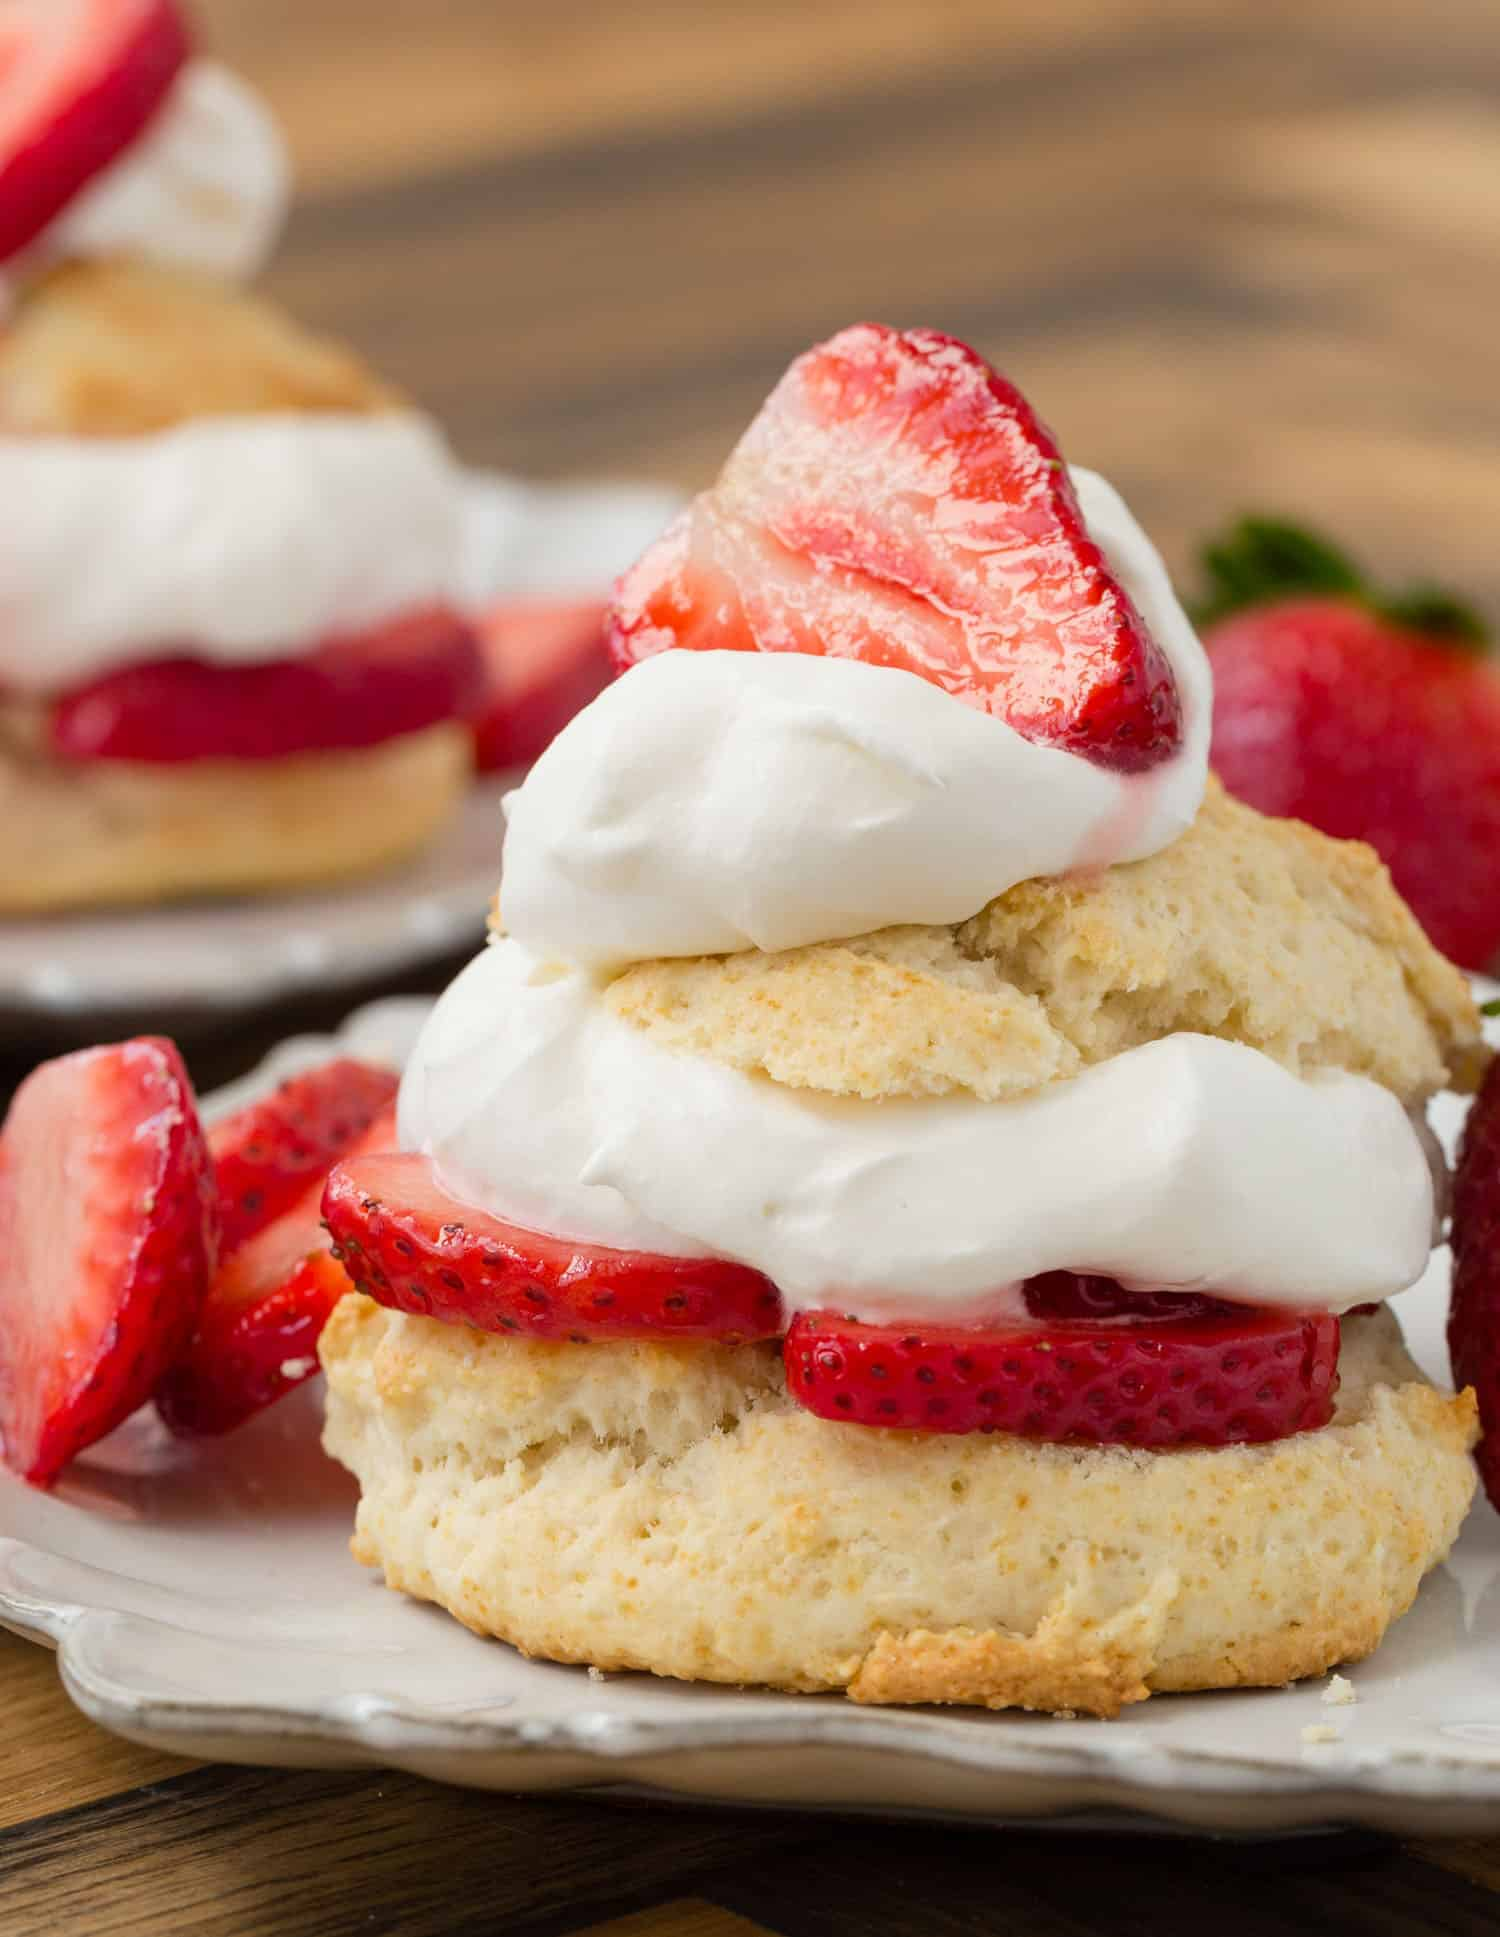 Close up view of strawberry shortcake on a white plate.